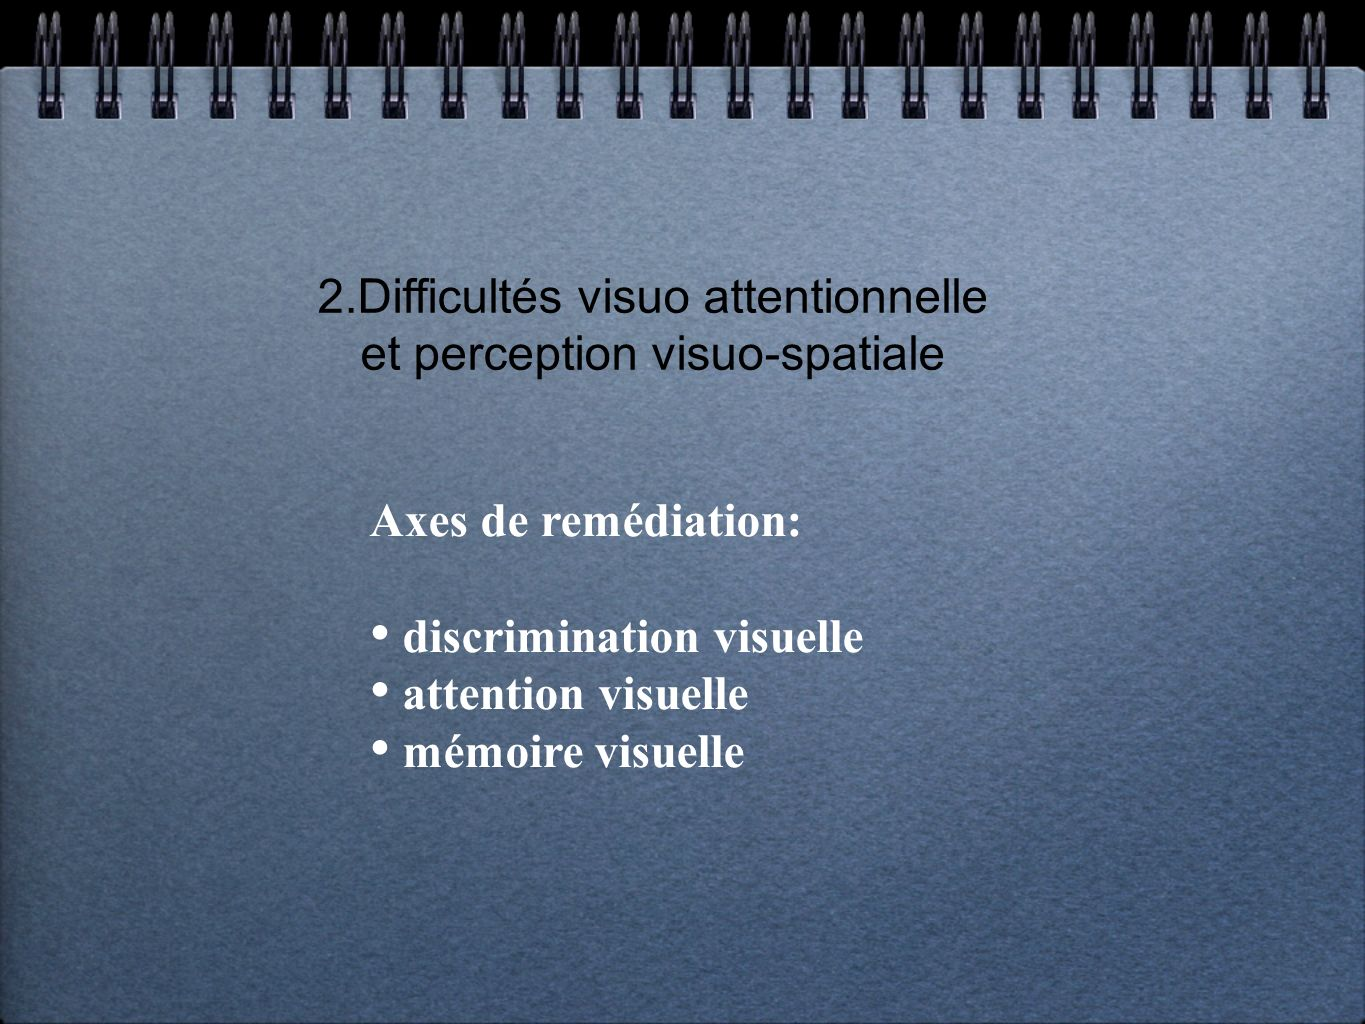 2.Difficultés visuo attentionnelle et perception visuo-spatiale